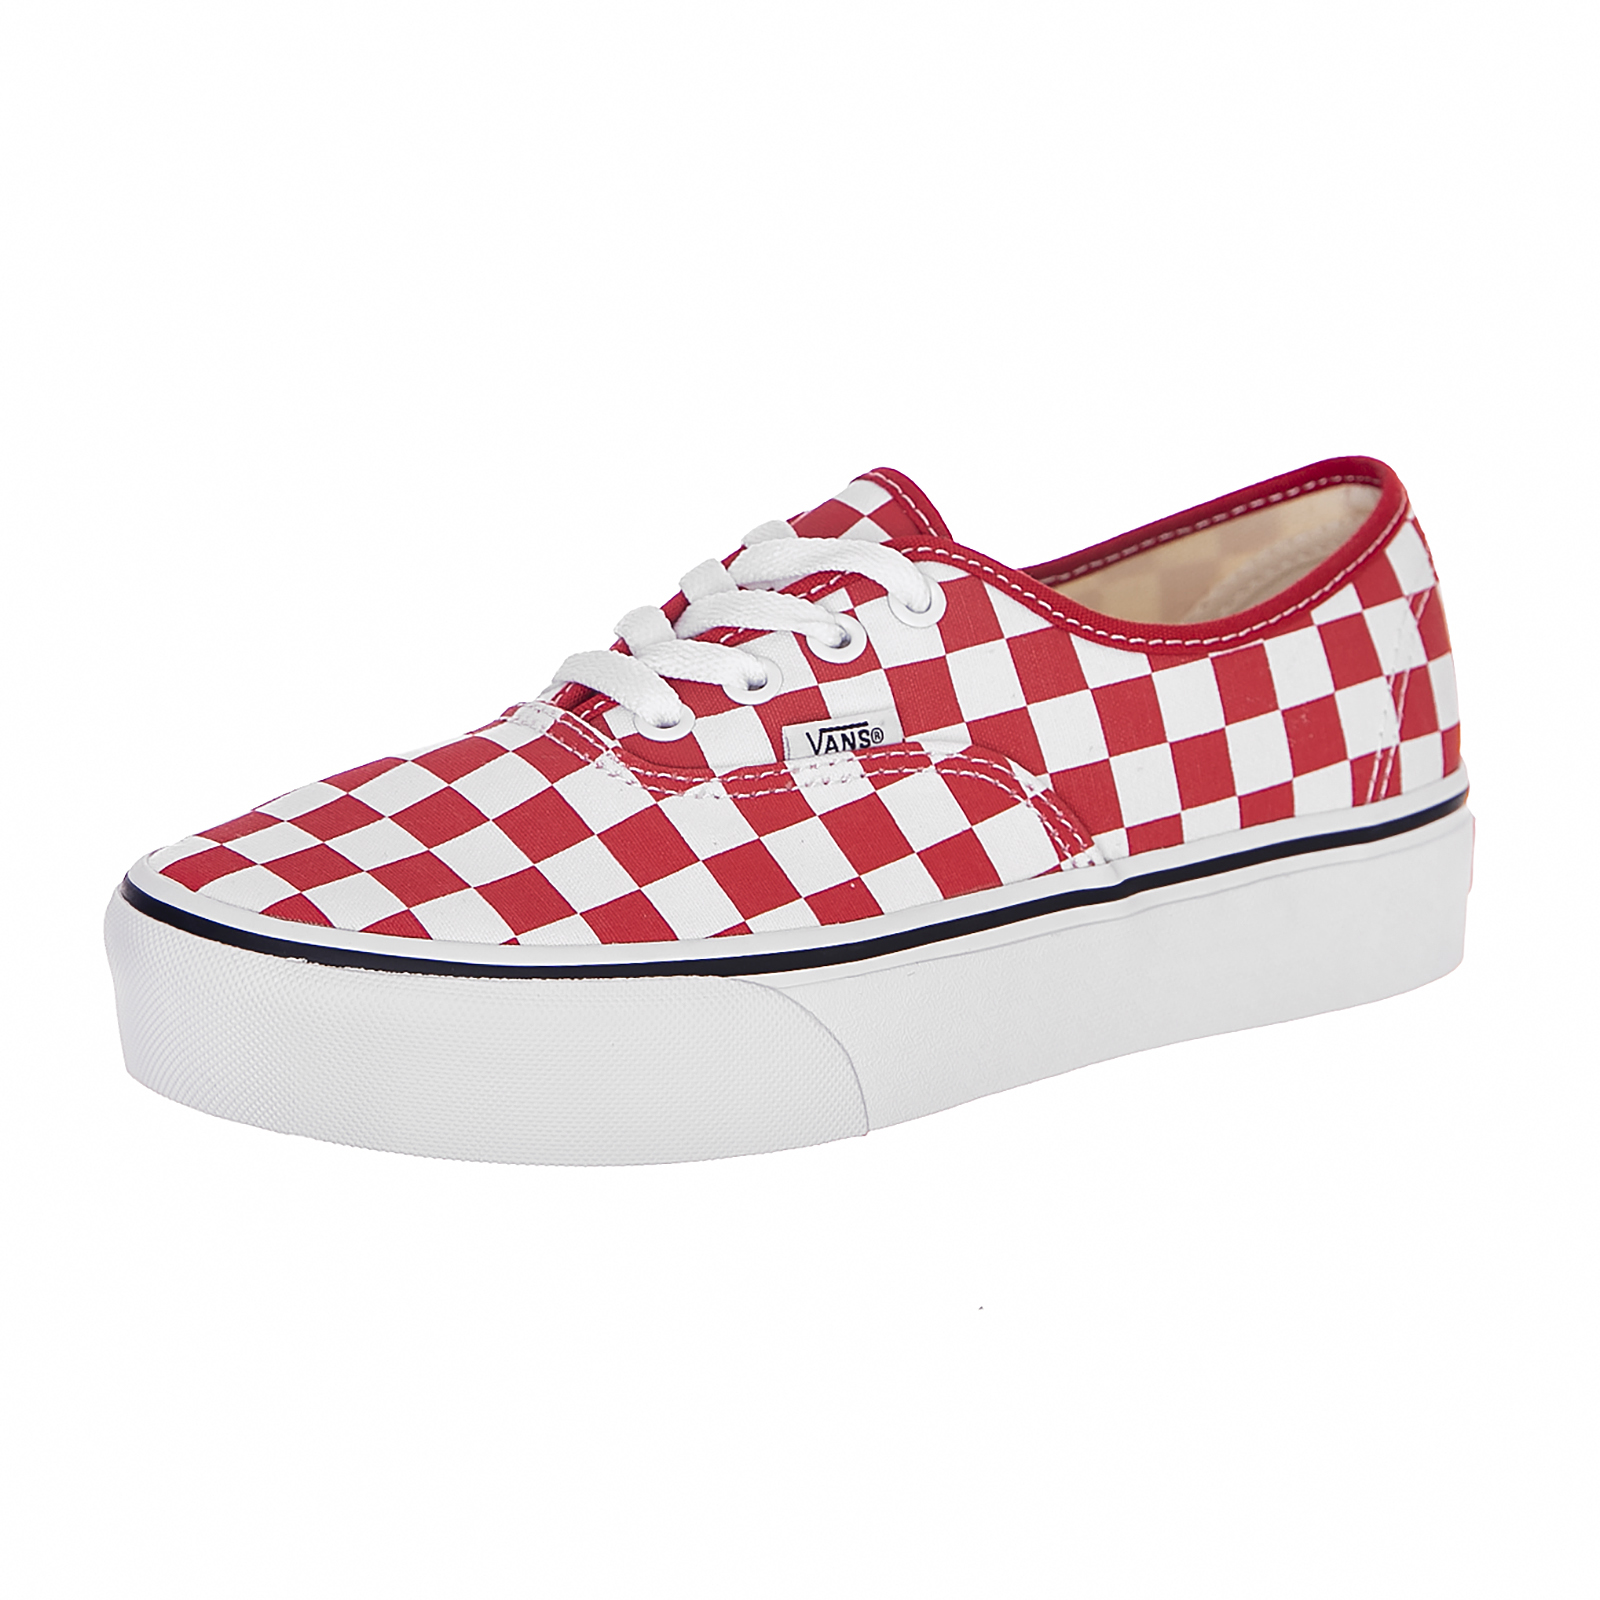 303f1deef90320 Vans Sneakers U Authentic Platform (Checkerboard) Red   White Rosso